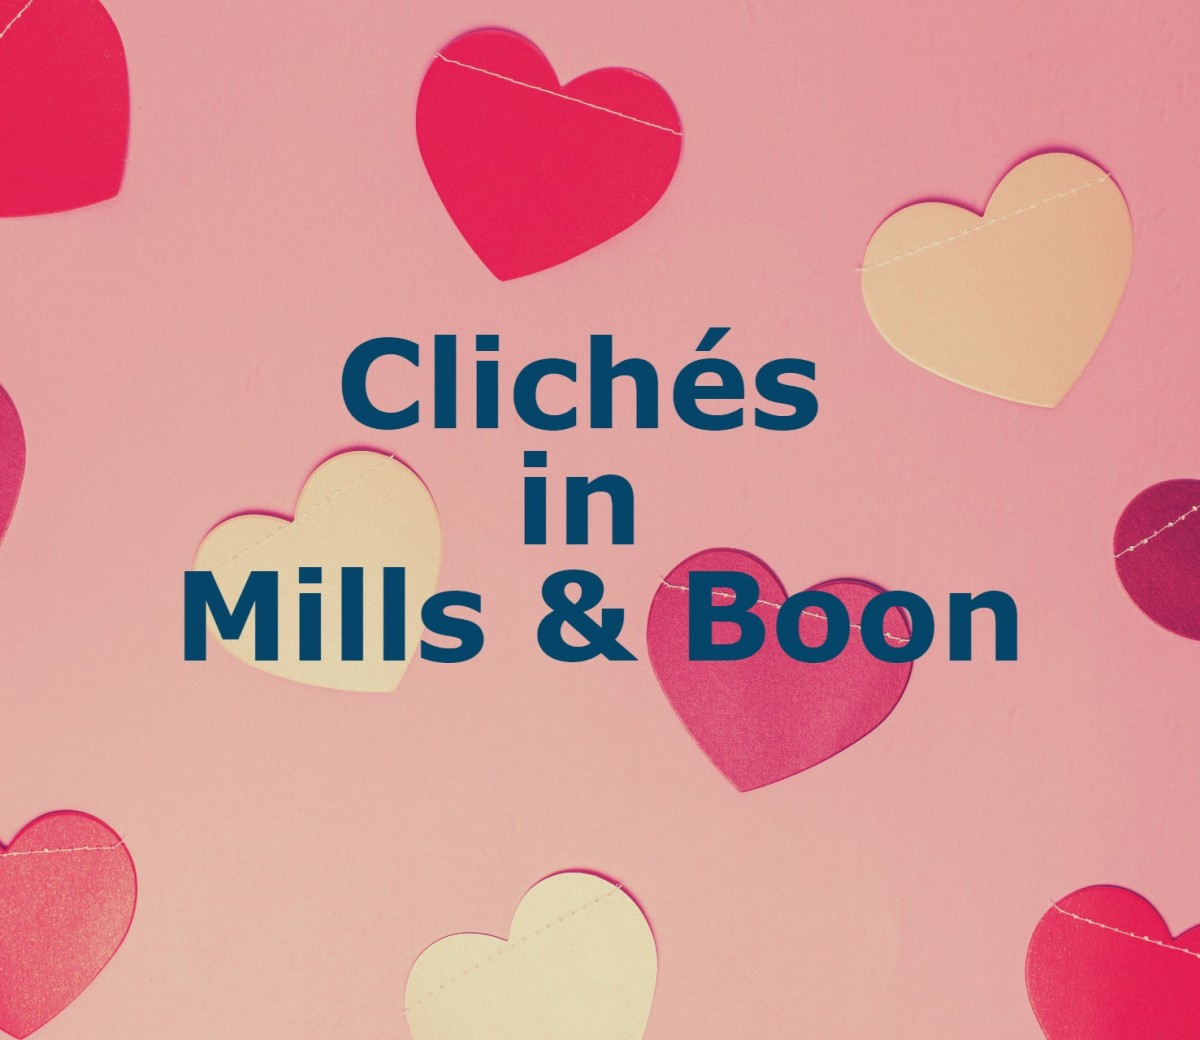 Love Mills & Boon! They're fluffy and lighthearted but some cliches need to given a decent burial.